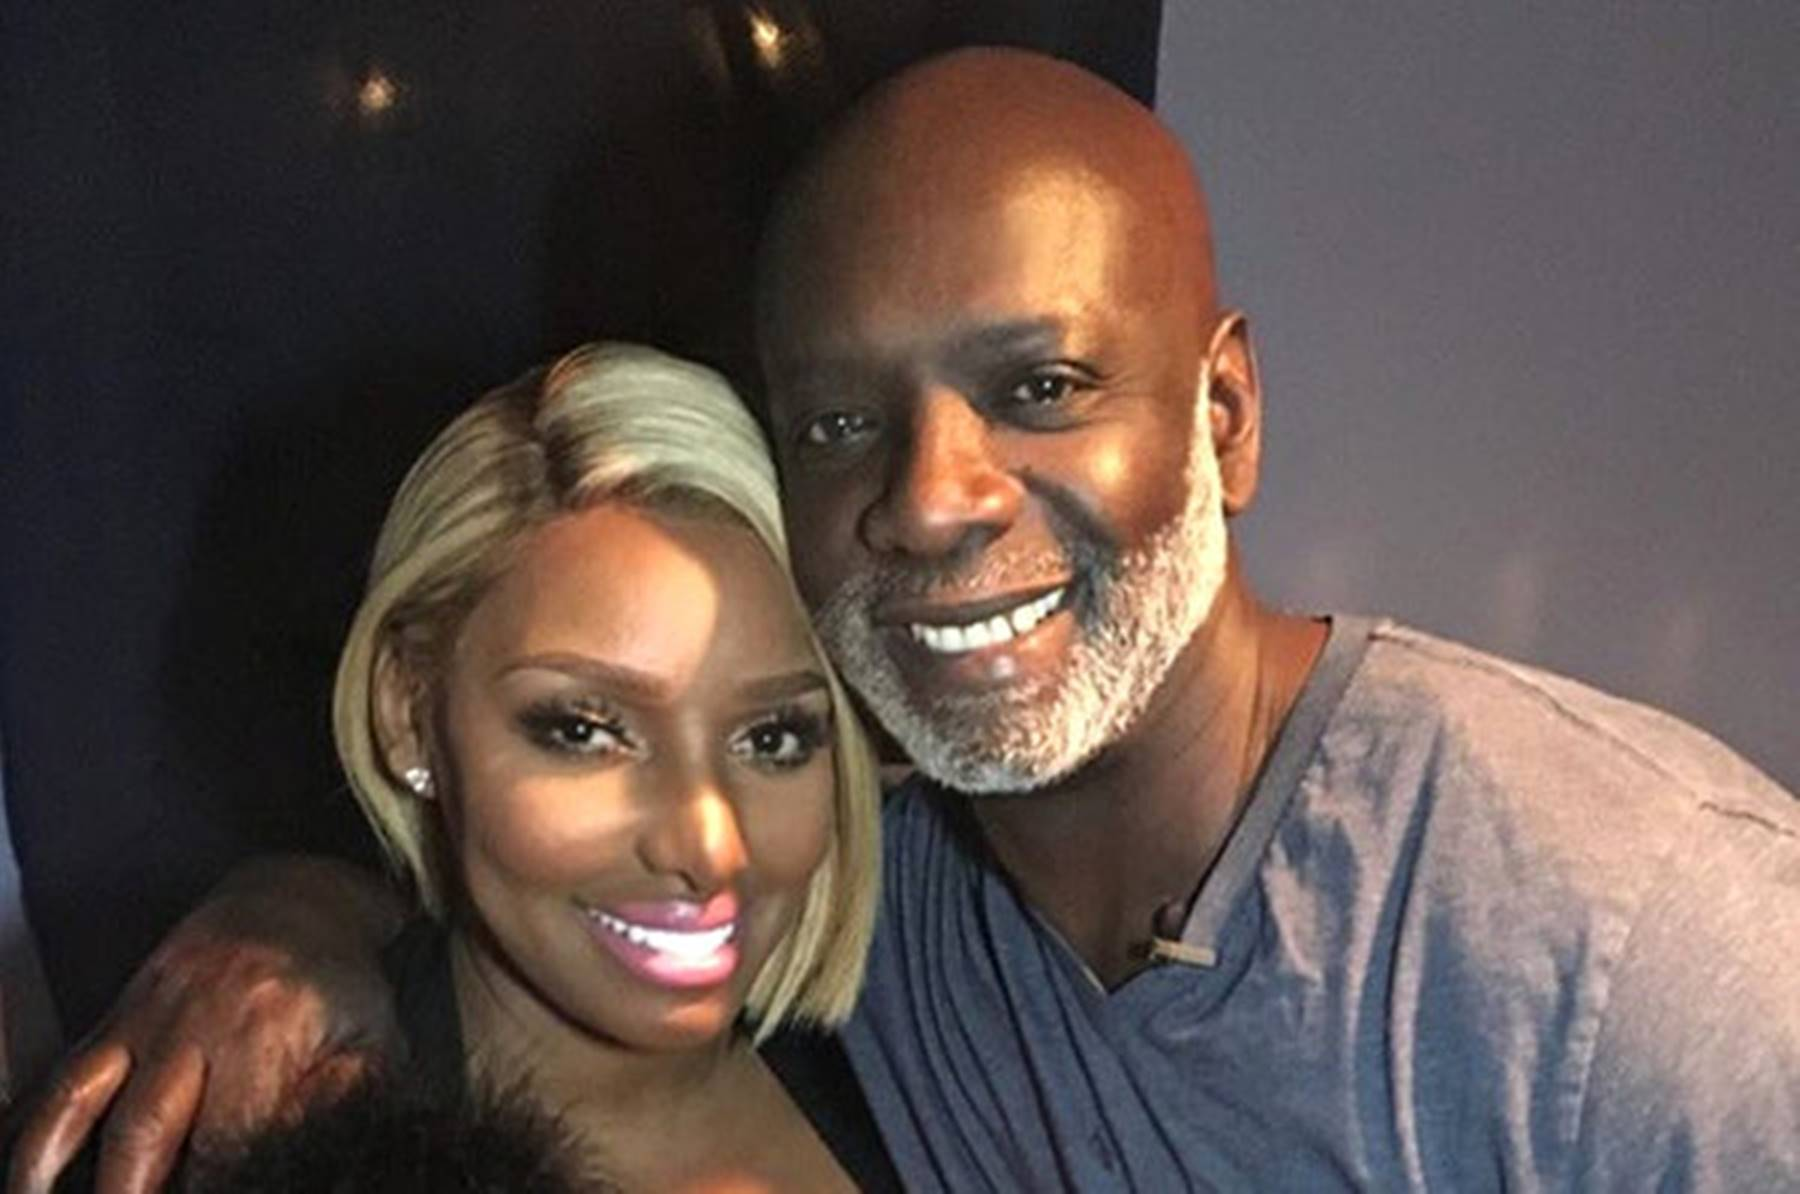 Peter Thomas Parties With NeNe Leakes For His Birthday - See The Video